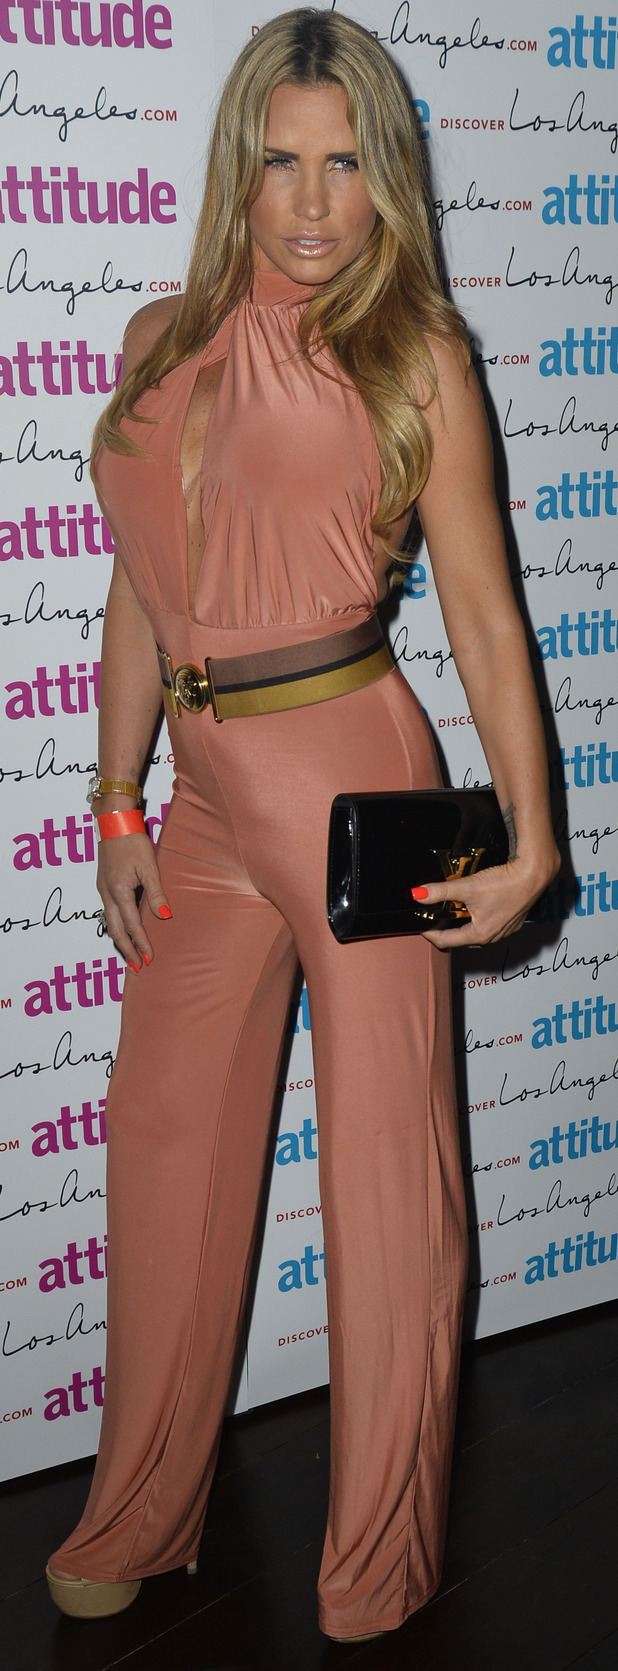 Katie Price at Attitude Magazine's Hot 100 Summer Party in London, 21st July 2015